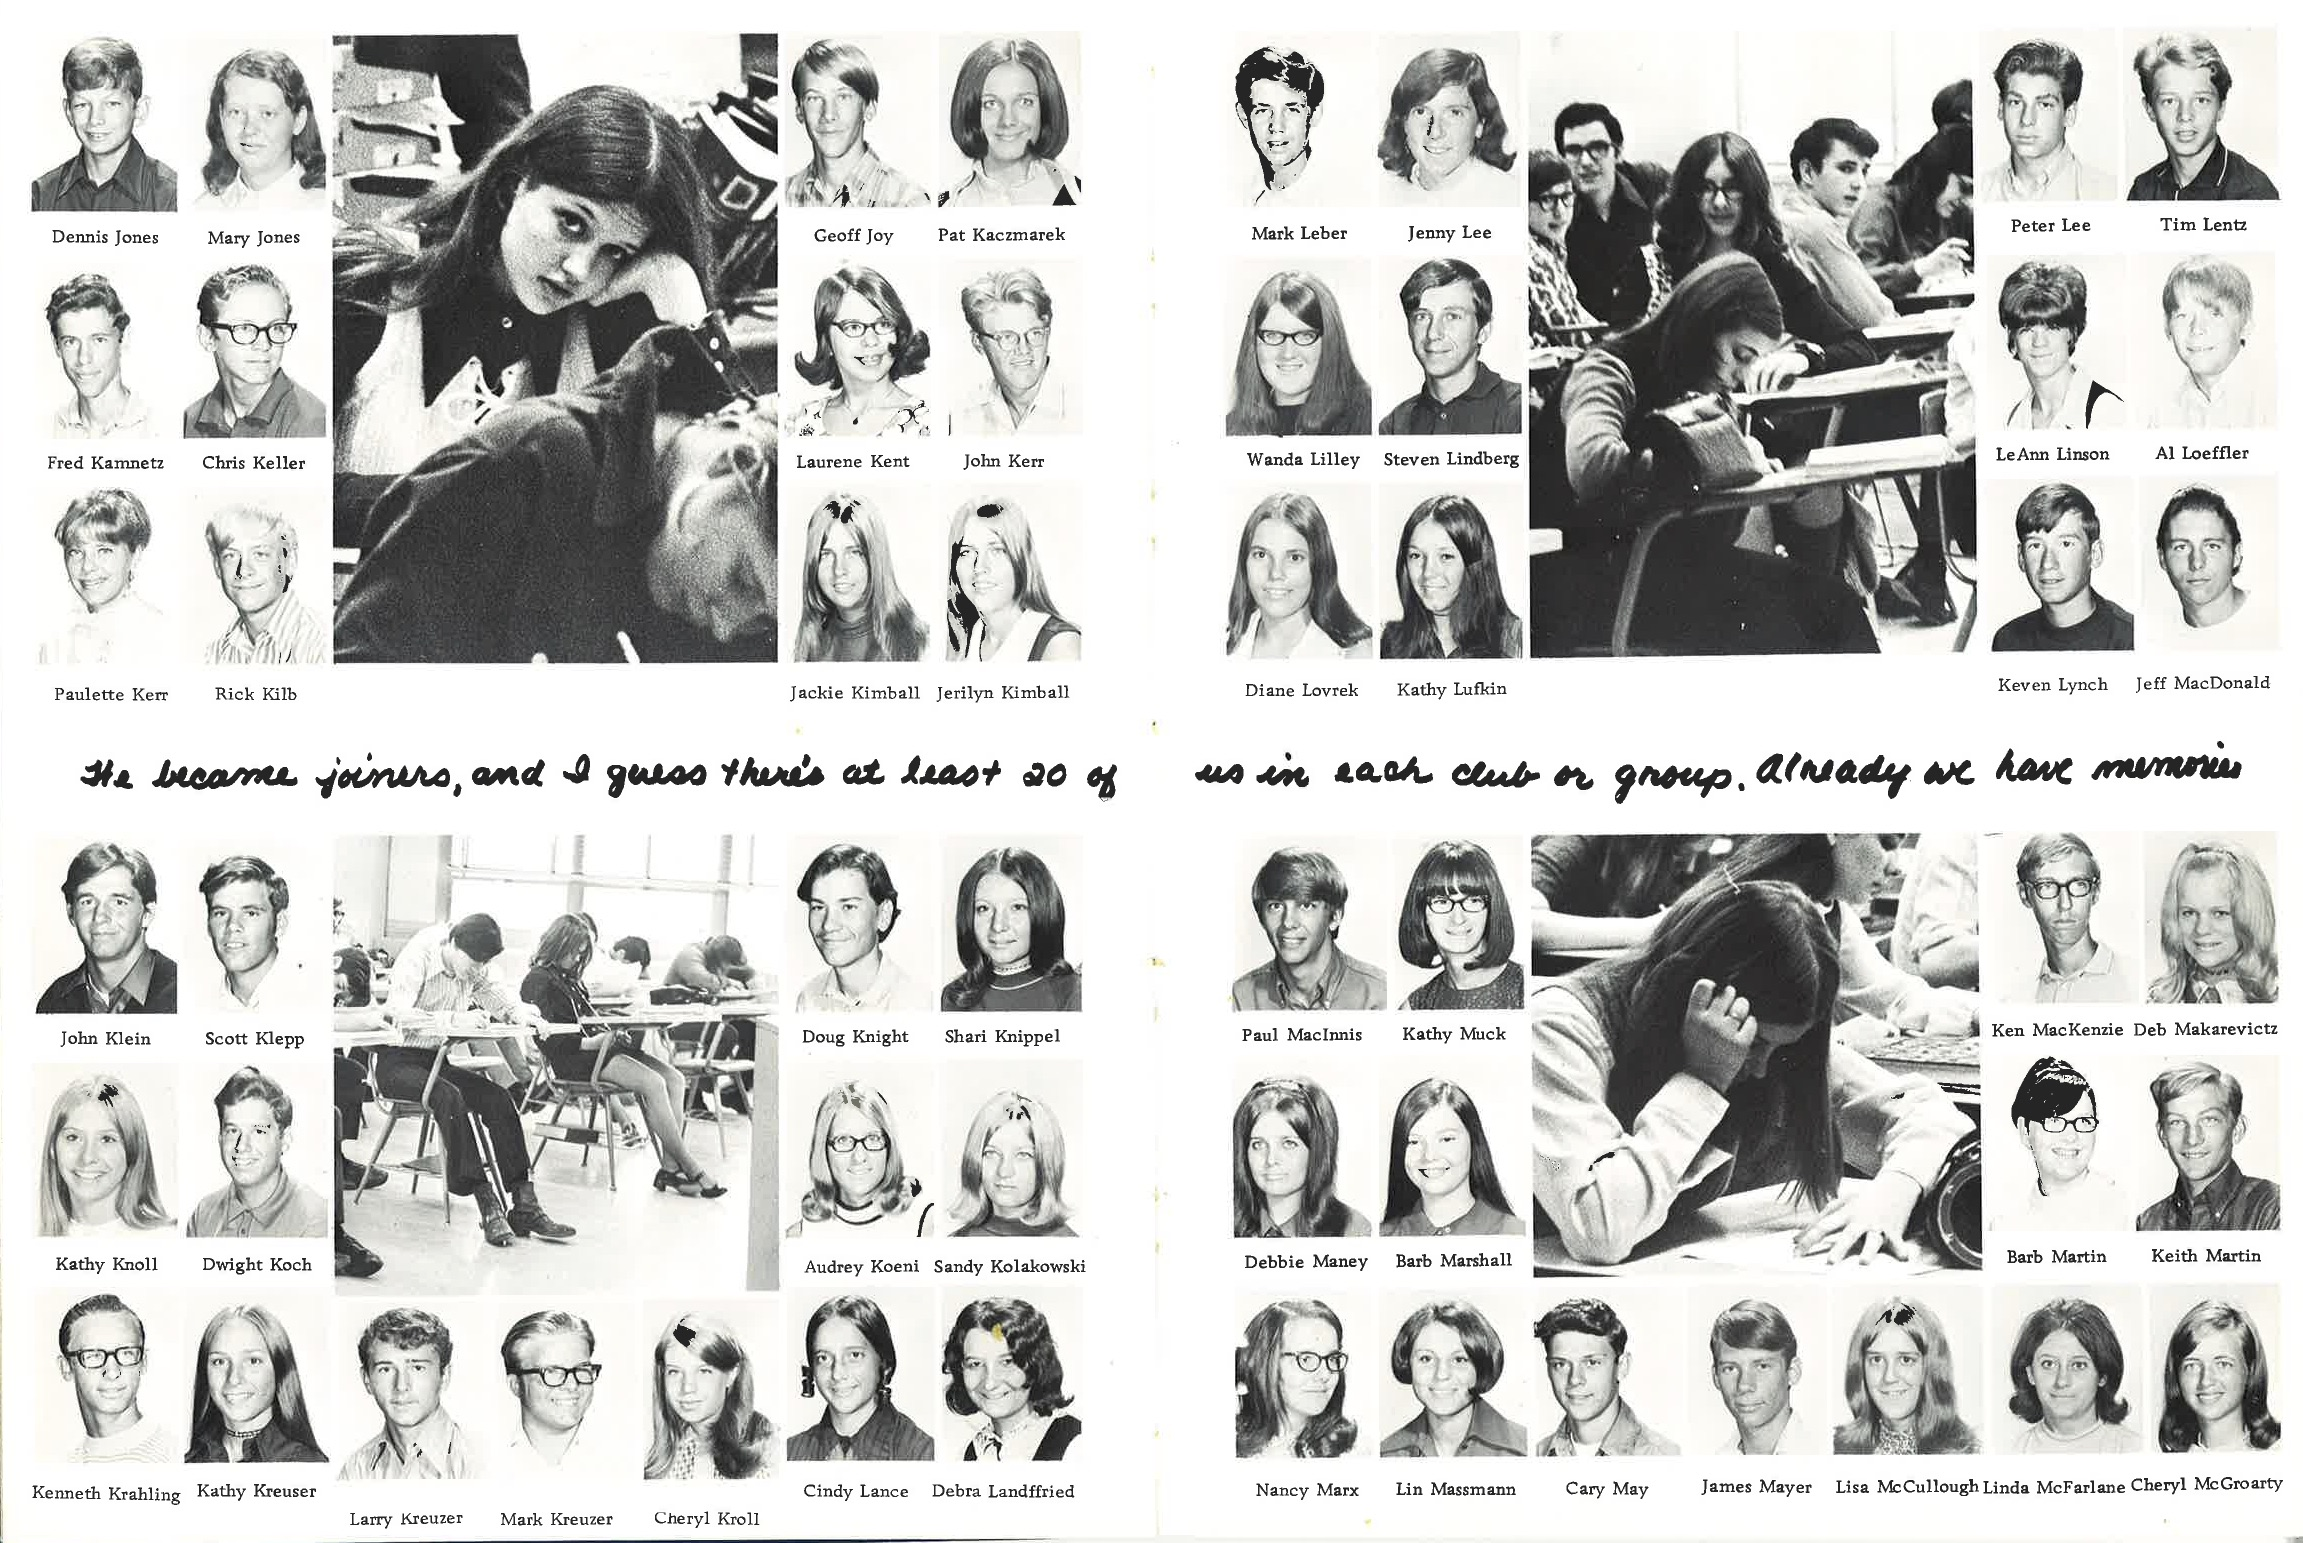 1971_Yearbook_42-43.jpg